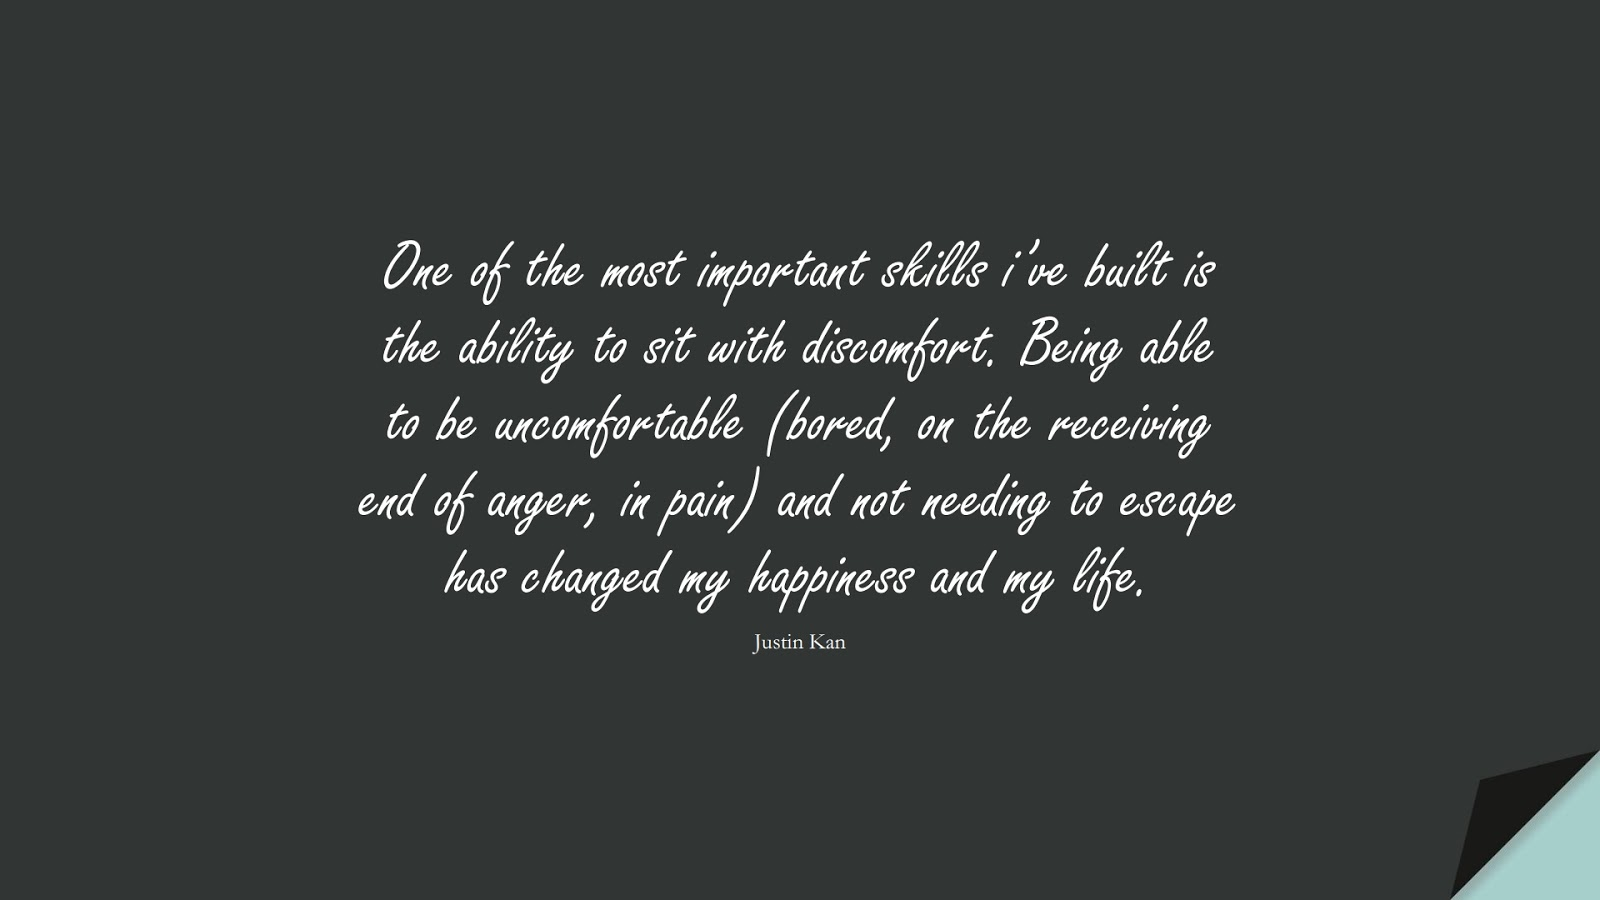 One of the most important skills i've built is the ability to sit with discomfort. Being able to be uncomfortable (bored, on the receiving end of anger, in pain) and not needing to escape has changed my happiness and my life. (Justin Kan);  #EncouragingQuotes